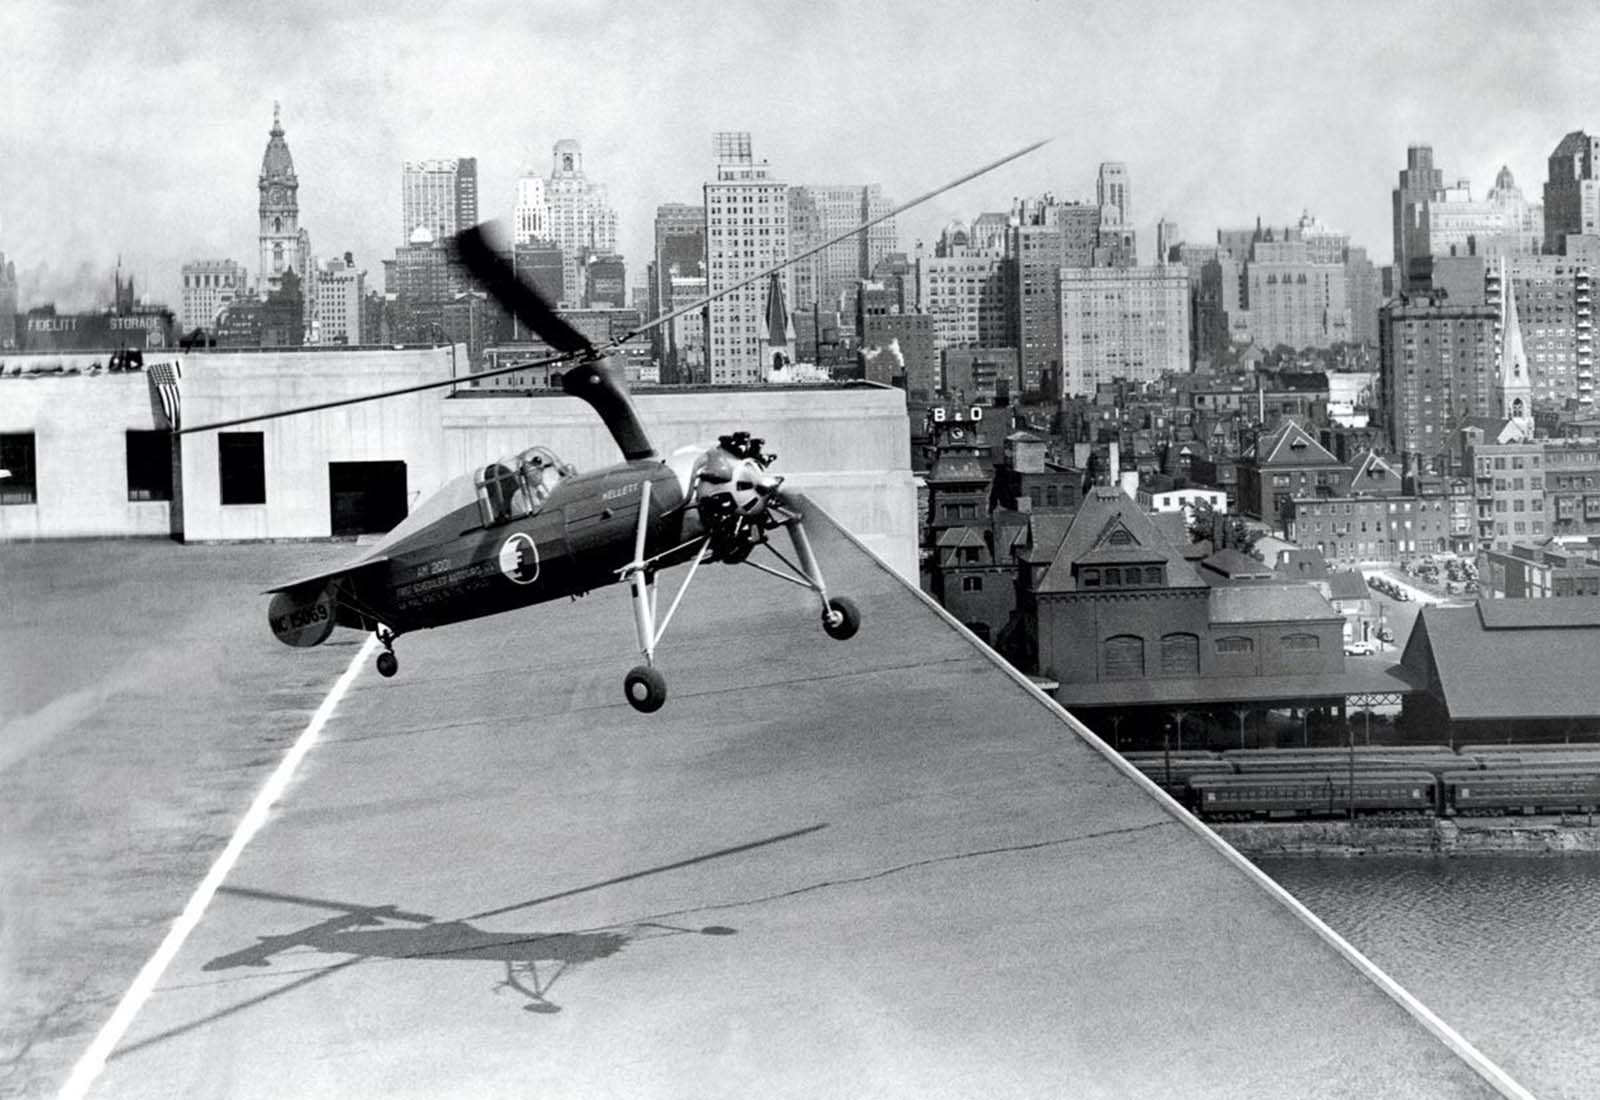 An autogyro takes off from a rooftop in Philadelphia. 1930.